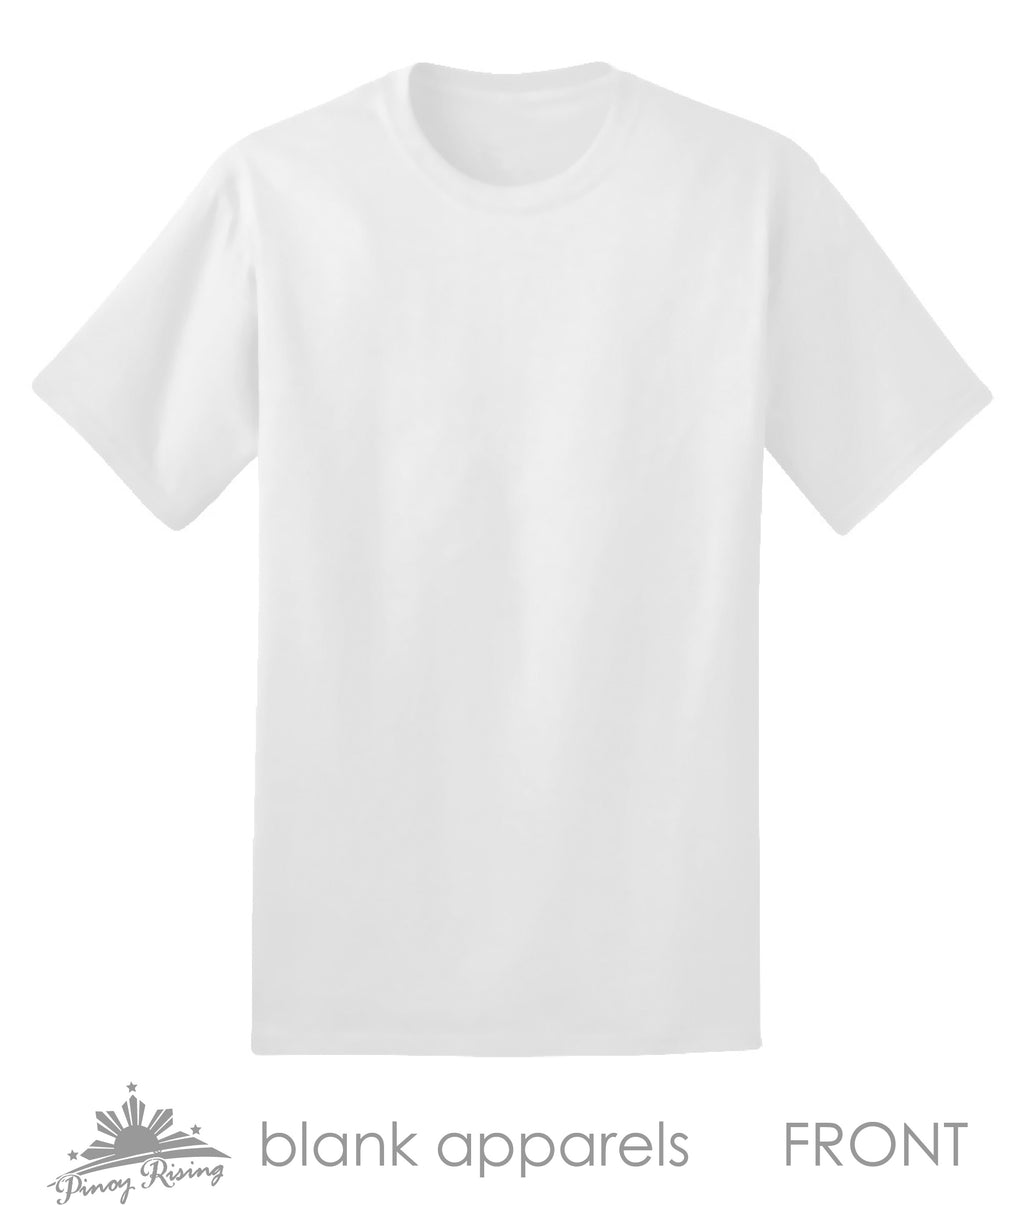 Blank Shirt for Filipino Groups and Events - Pinoy Rising Brand